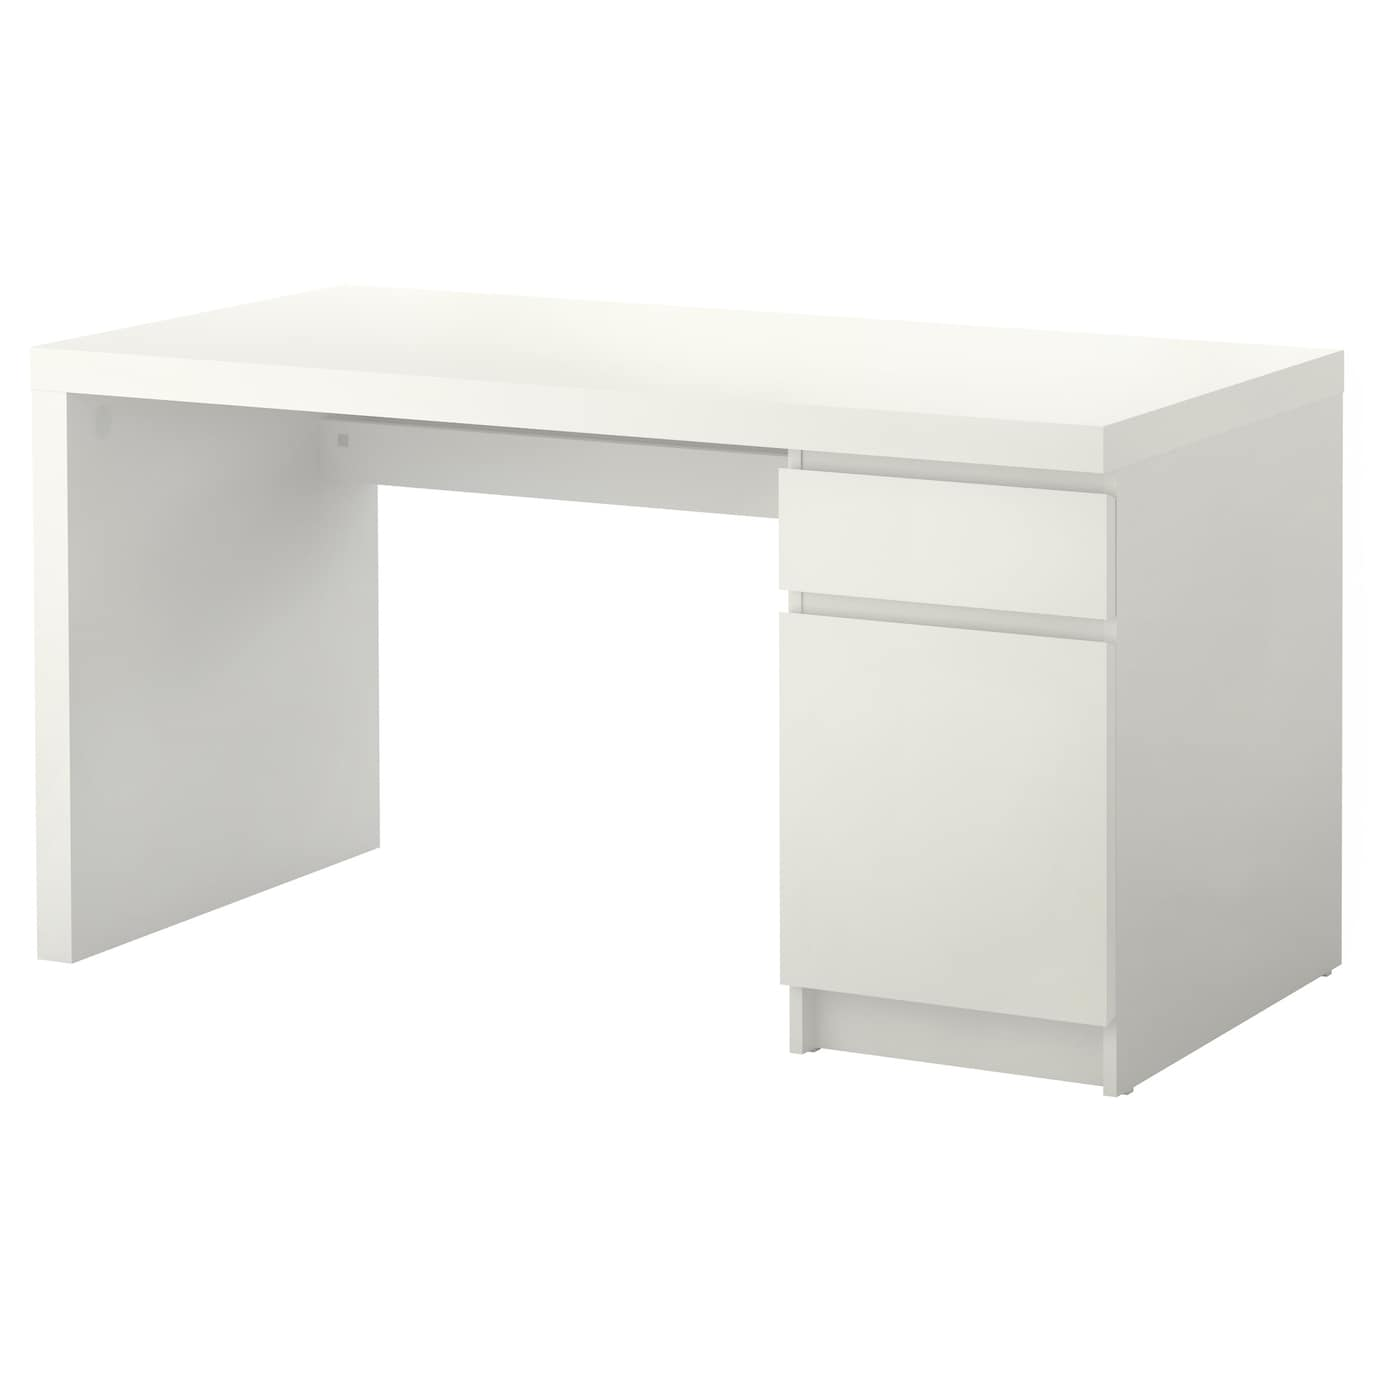 malm bureau blanc 140 x 65 cm ikea. Black Bedroom Furniture Sets. Home Design Ideas